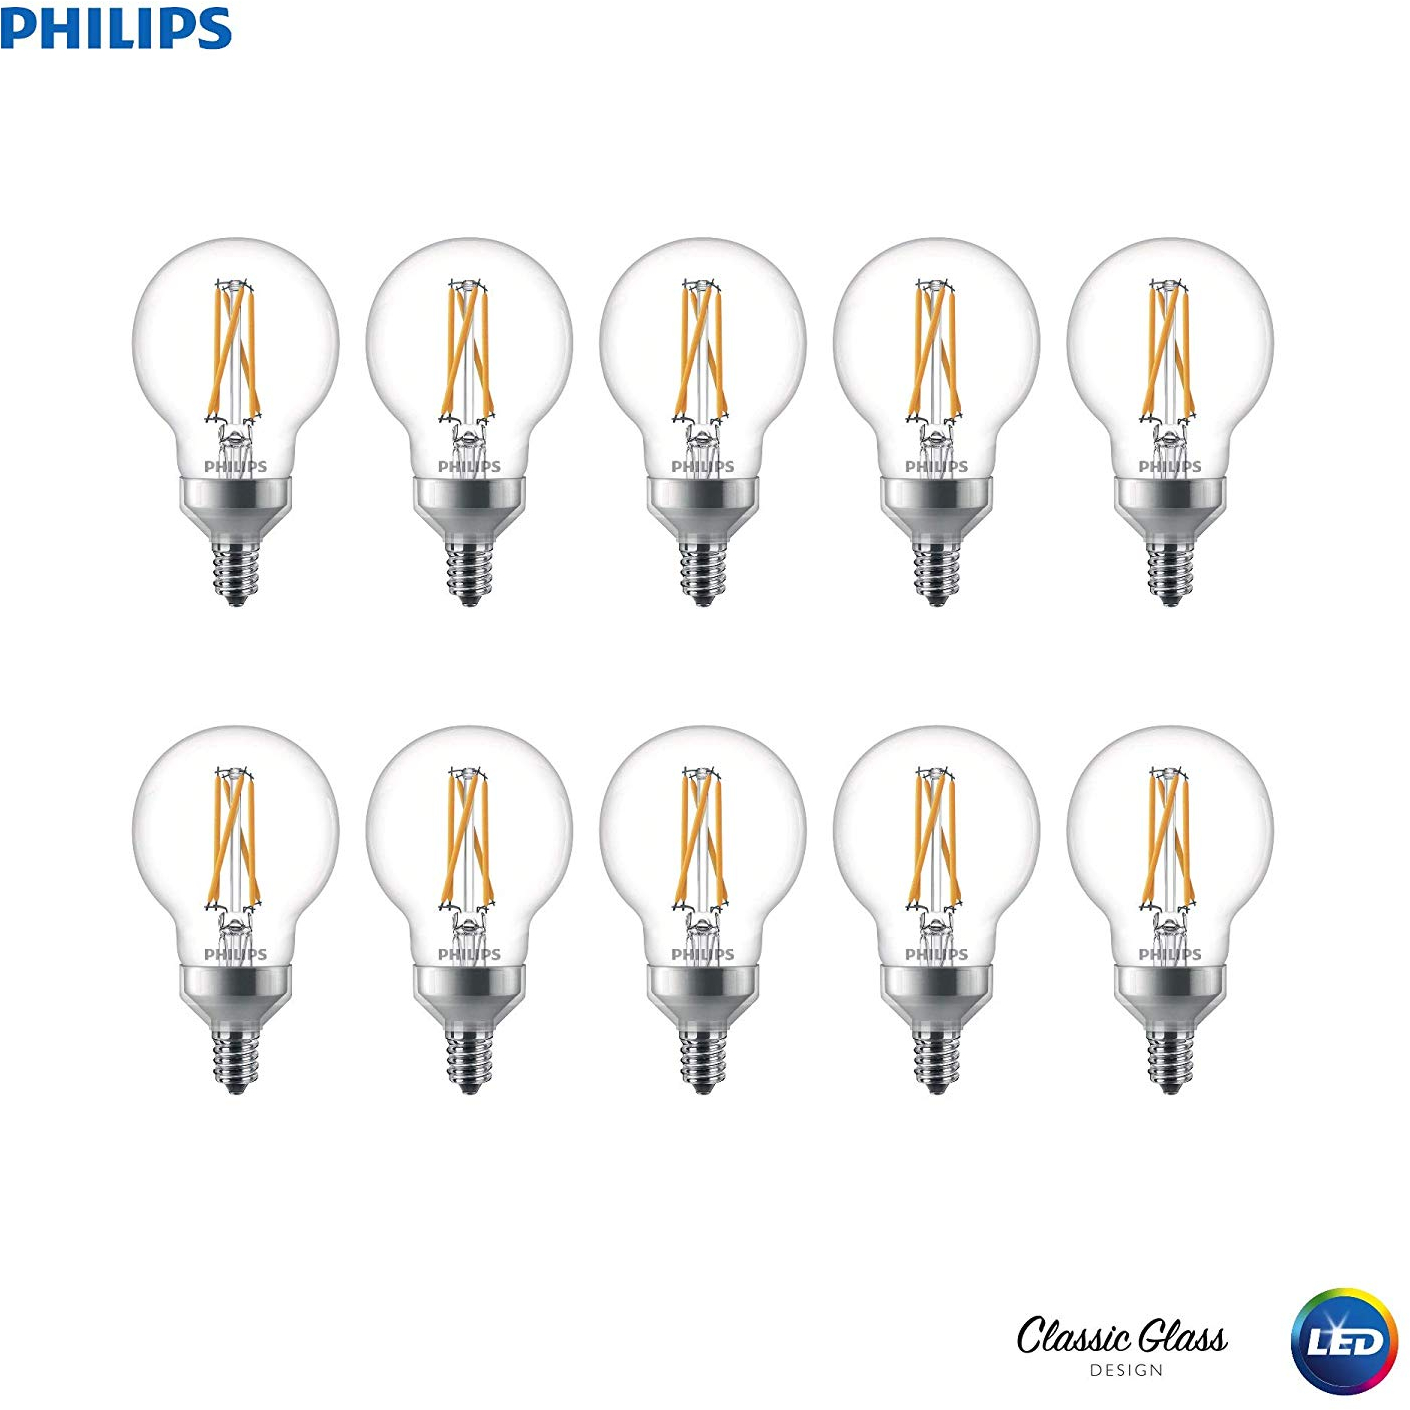 Philips Led Dimmable G16 5 Frosted Filament Glass